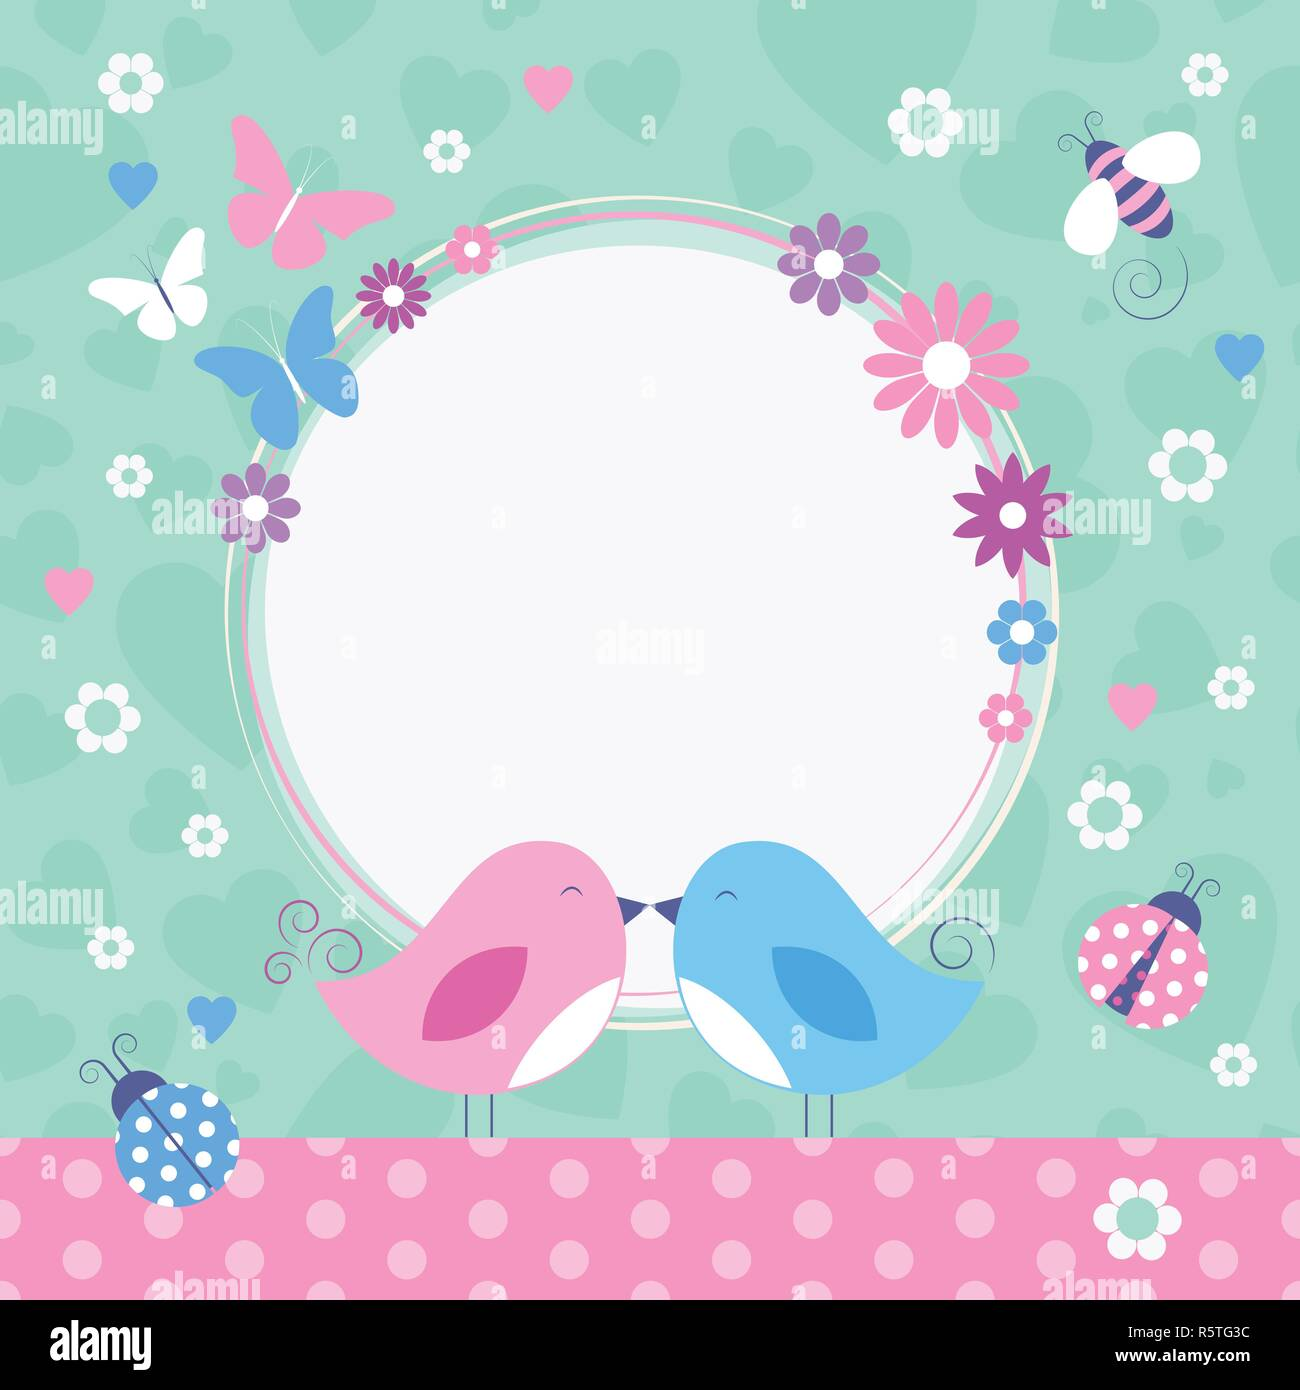 Flowery love birds border with bumble bee, ladybugs and butterflies on green and pink heart shape and polka dot pattern background Stock Vector